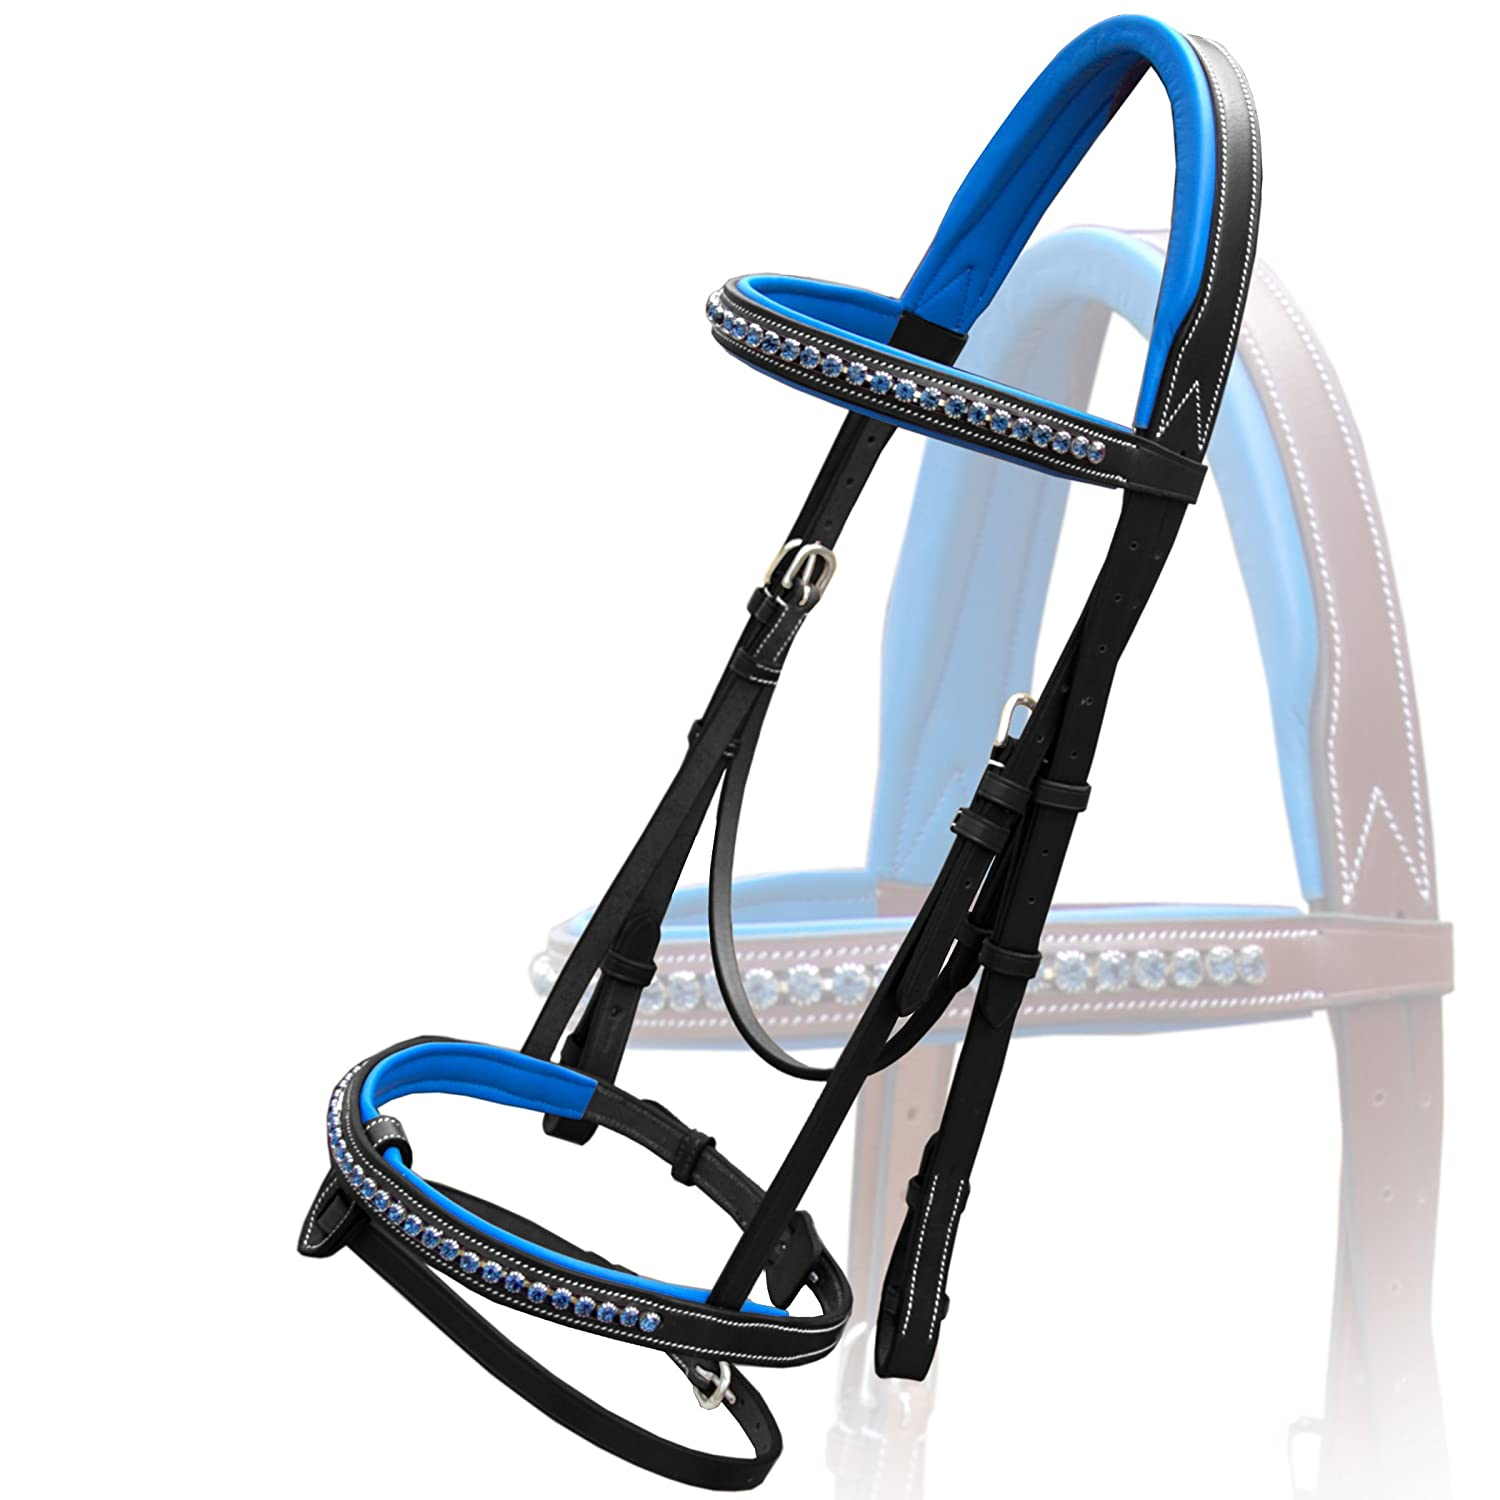 Black Warm Blood (Over) Black Warm Blood (Over) Exion Dark bluee Diamond Leather Bridle with Reins and Stainless Steel Buckles   Equestrian Show Jumping Padded Bridle Set  English Horse Riding Premium Tack   Black   Warm Blood (Over)